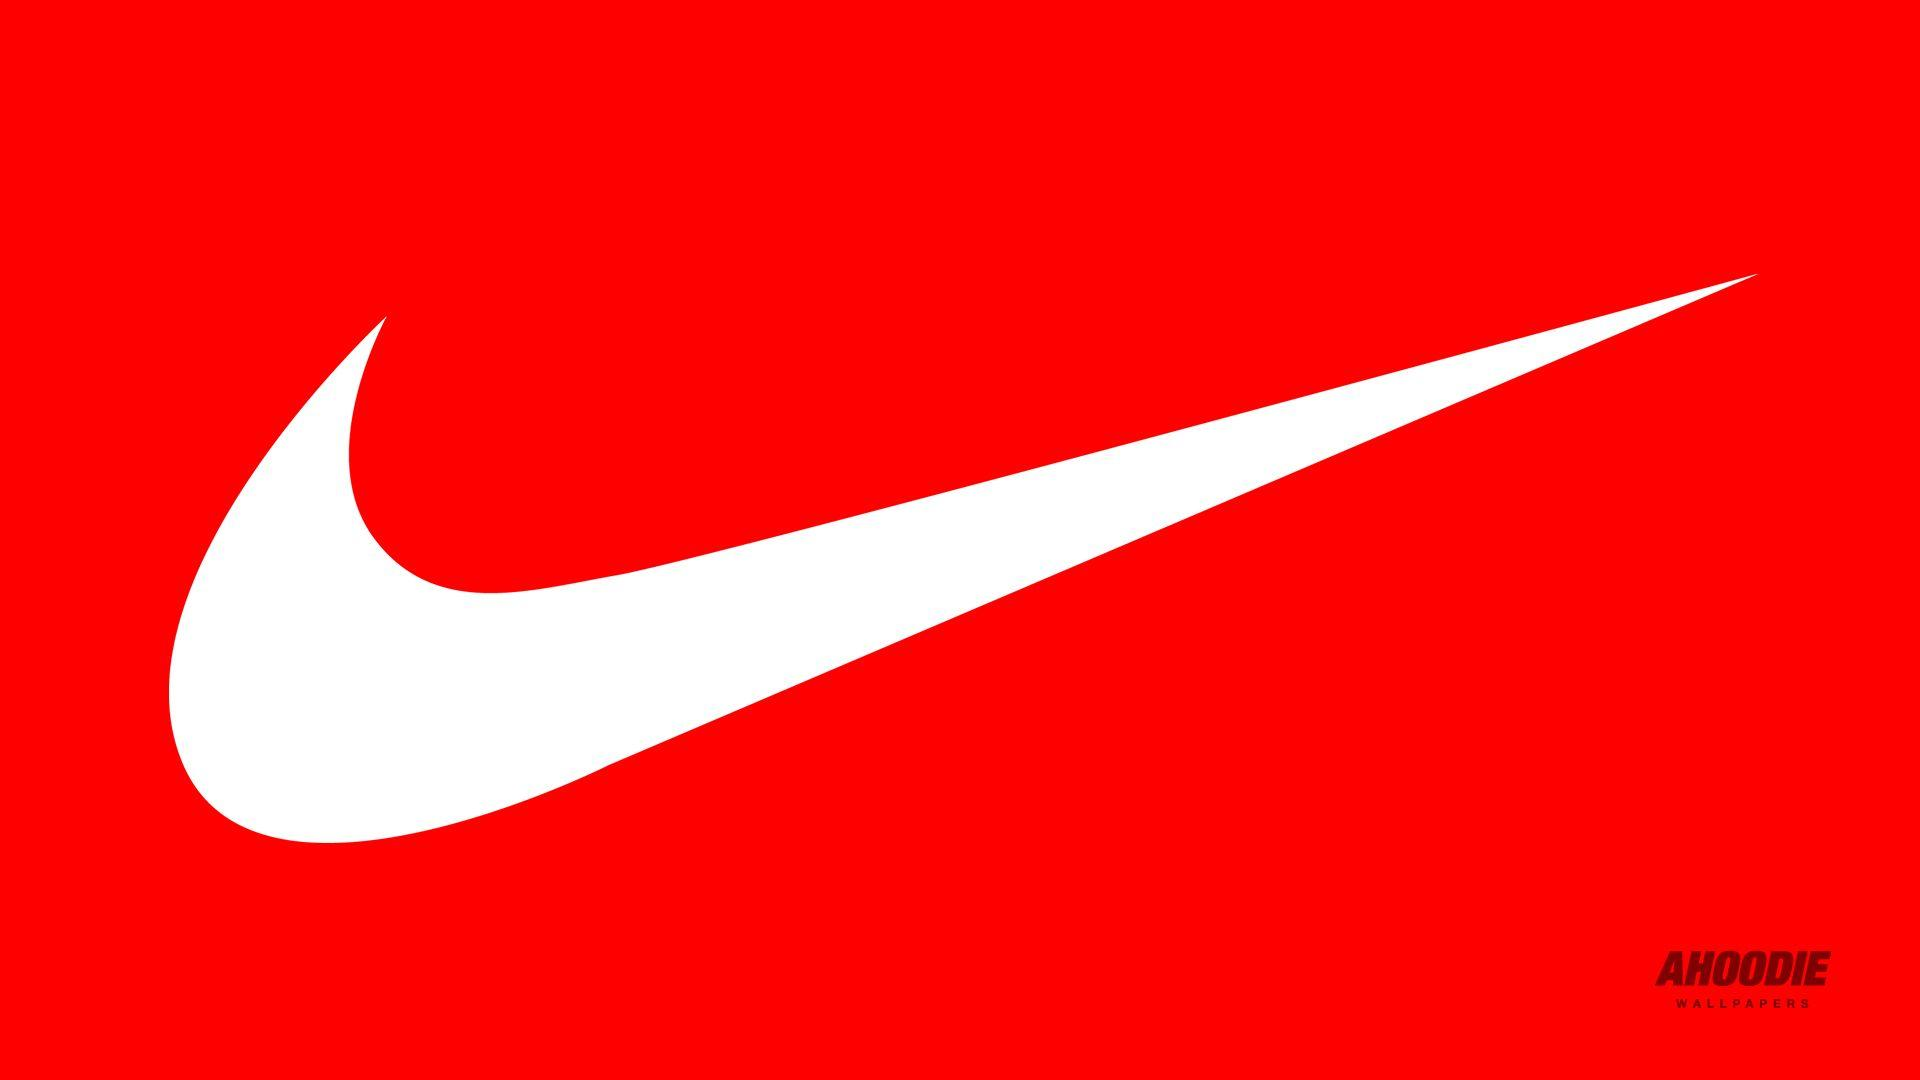 Awesome Nike Wallpapers 1920x1080